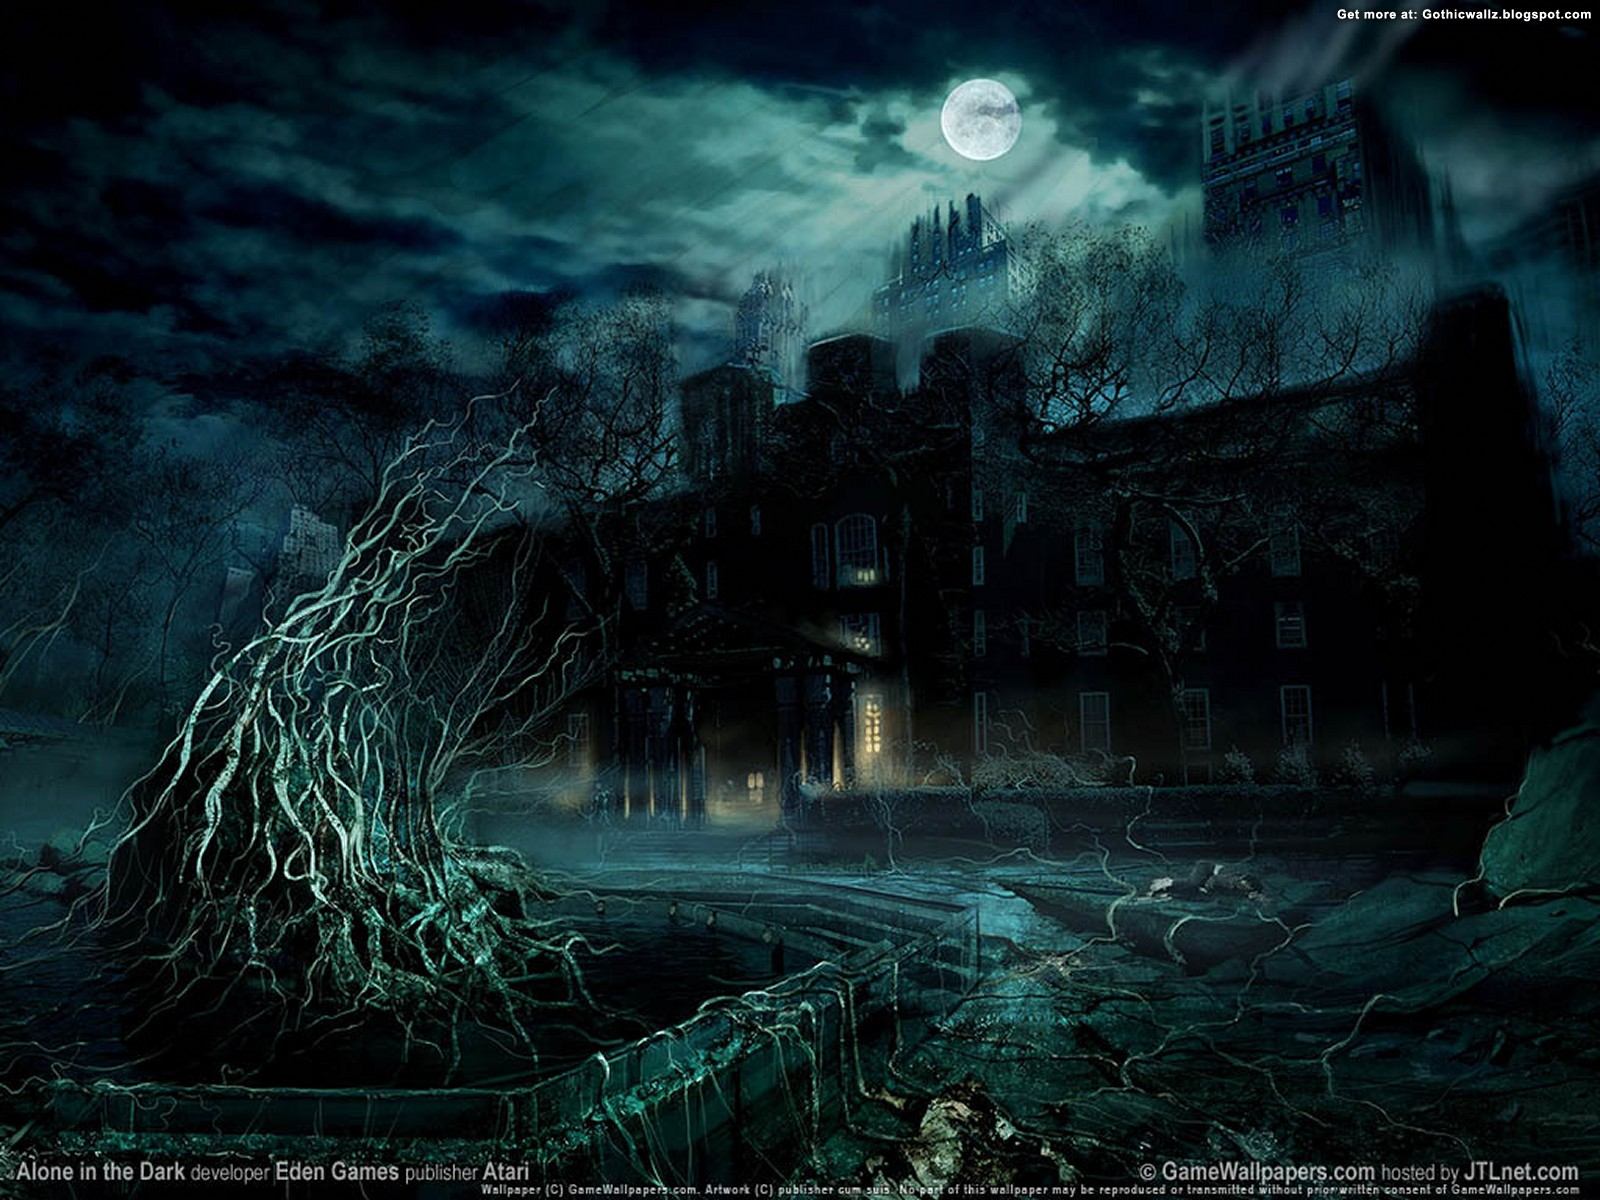 Occult Wallpapers Hd Wallpaper Alone In The Dark Dark Gothic Wallpapers